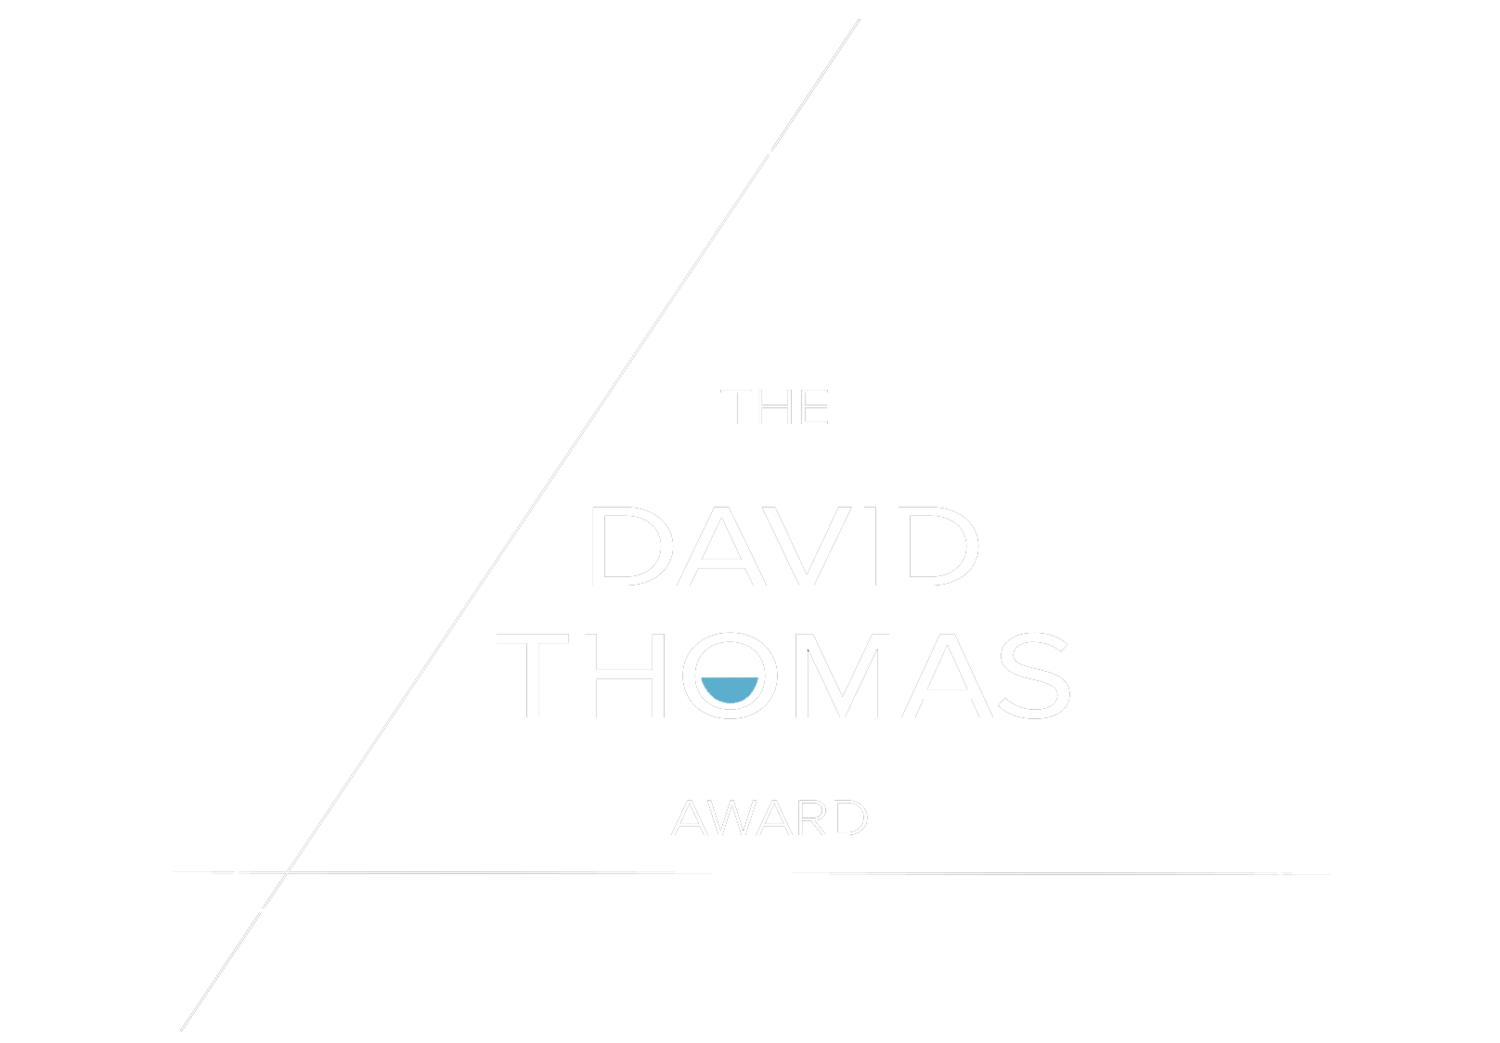 The David Thomas Award